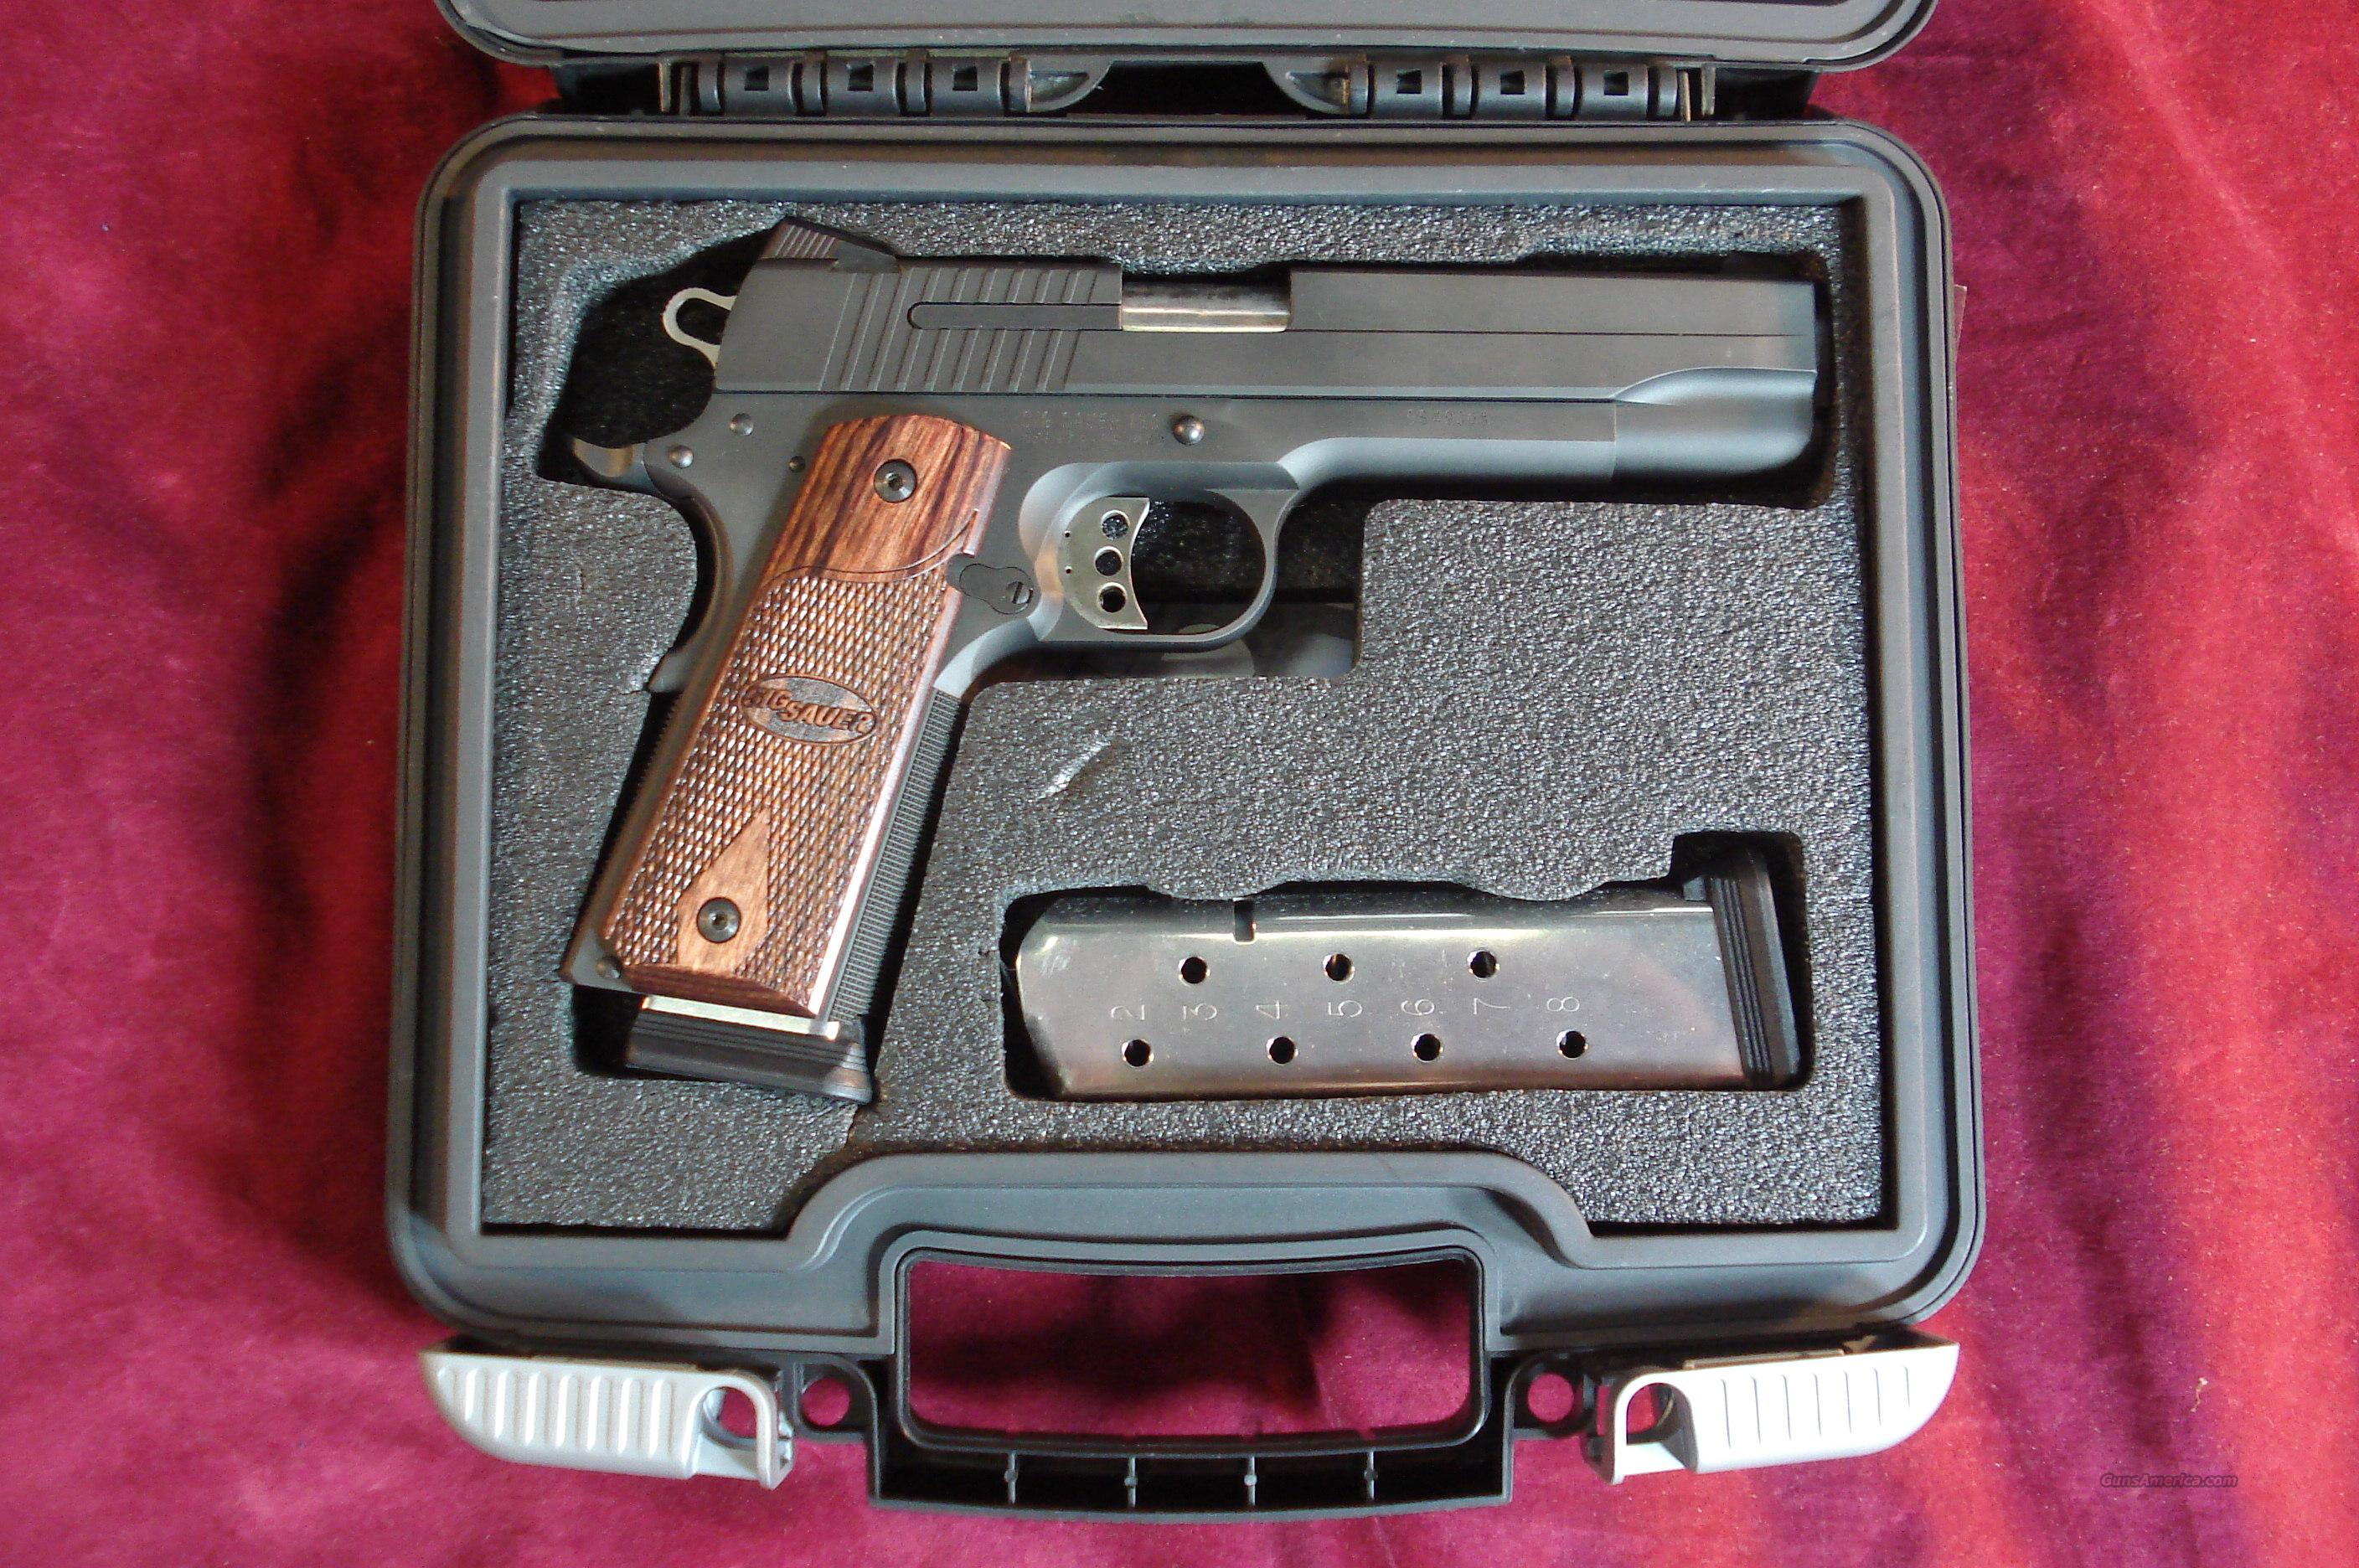 SIG SAUER 1911 .45 ACP NITRON FINISH BLACK WITH NIGHT SIGHTS USED  Guns > Pistols > Sig - Sauer/Sigarms Pistols > 1911